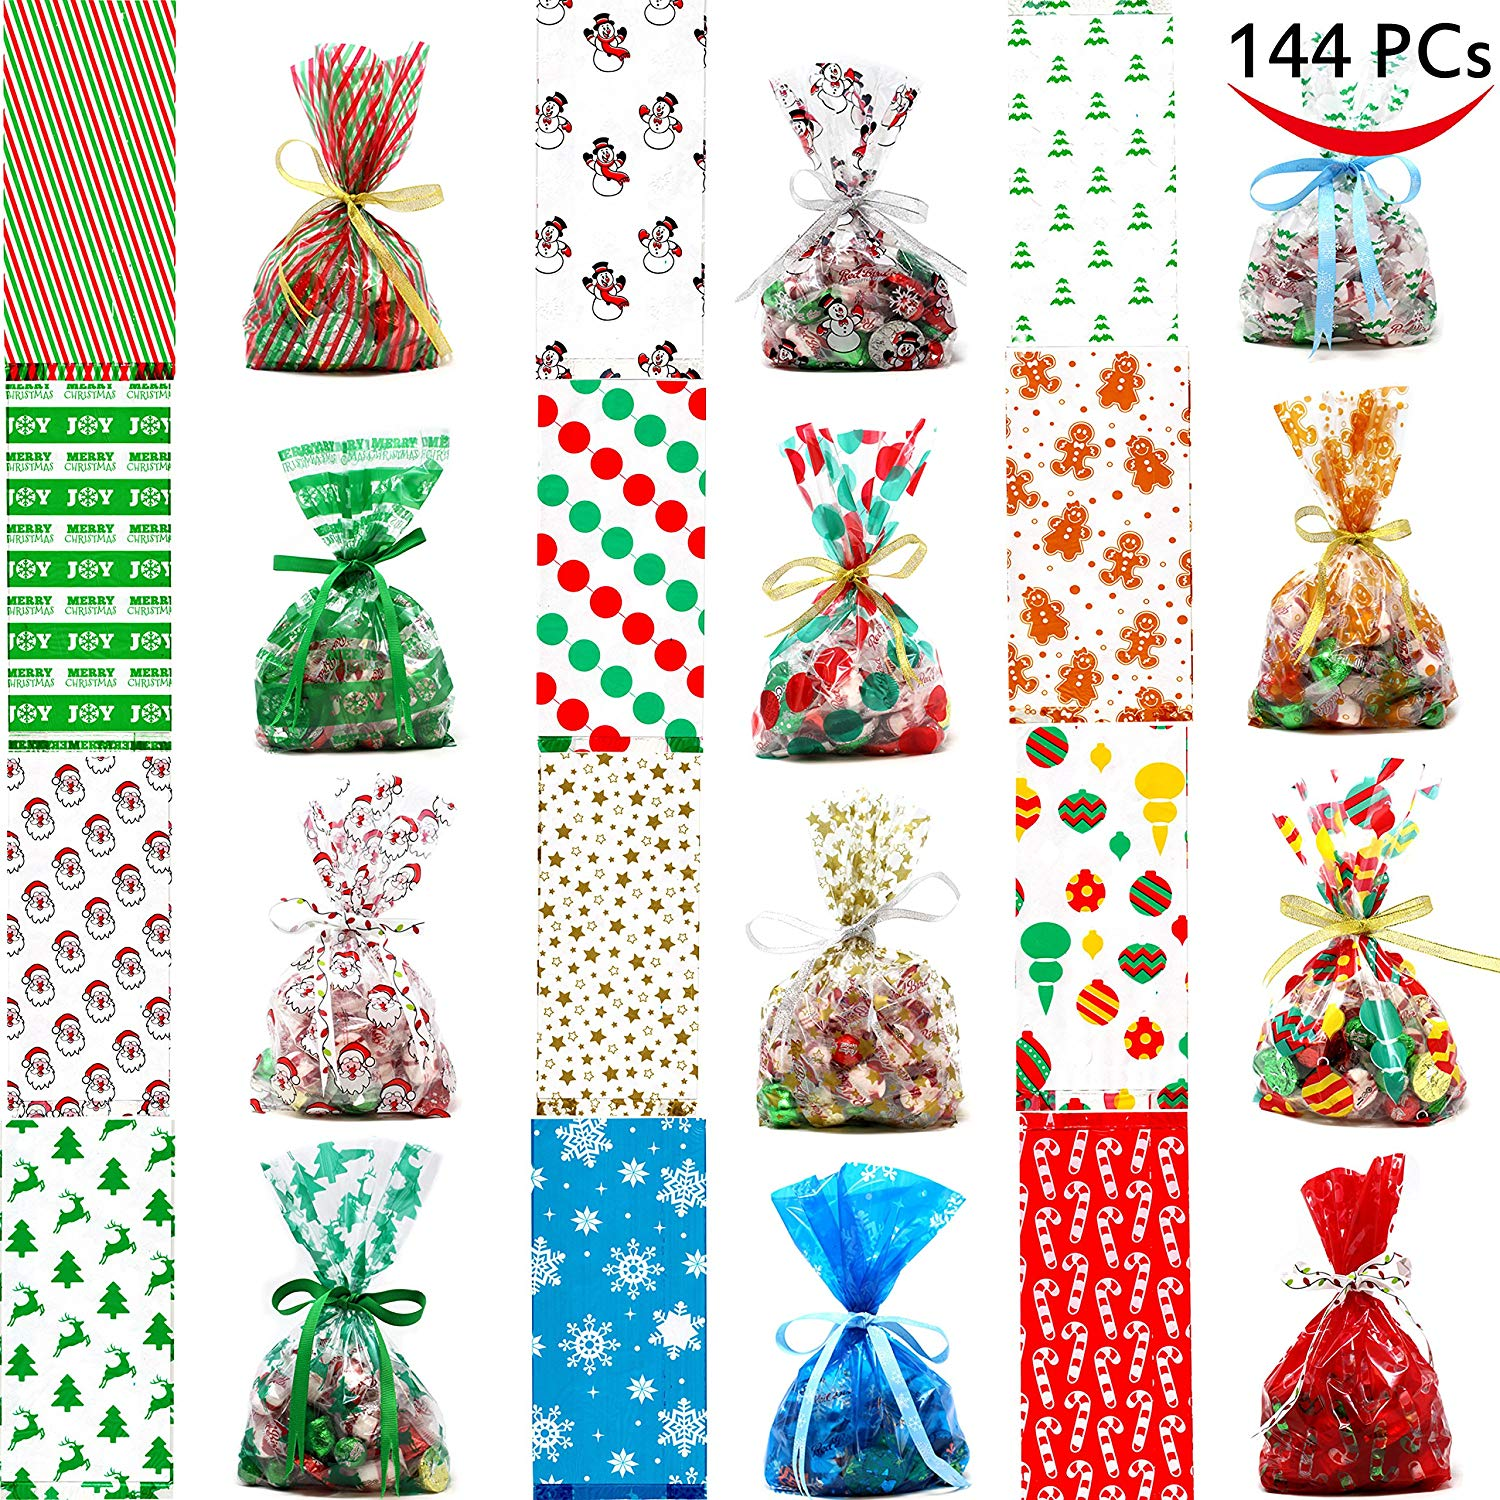 Joiedomi 144 PCs Christmas Cellophane Goody Bags Assortment for Christmas Holiday Treats Bags, Christmas Party Favors, Cello Candy Bags,, Party Supplies, Christmas Goodie Bags